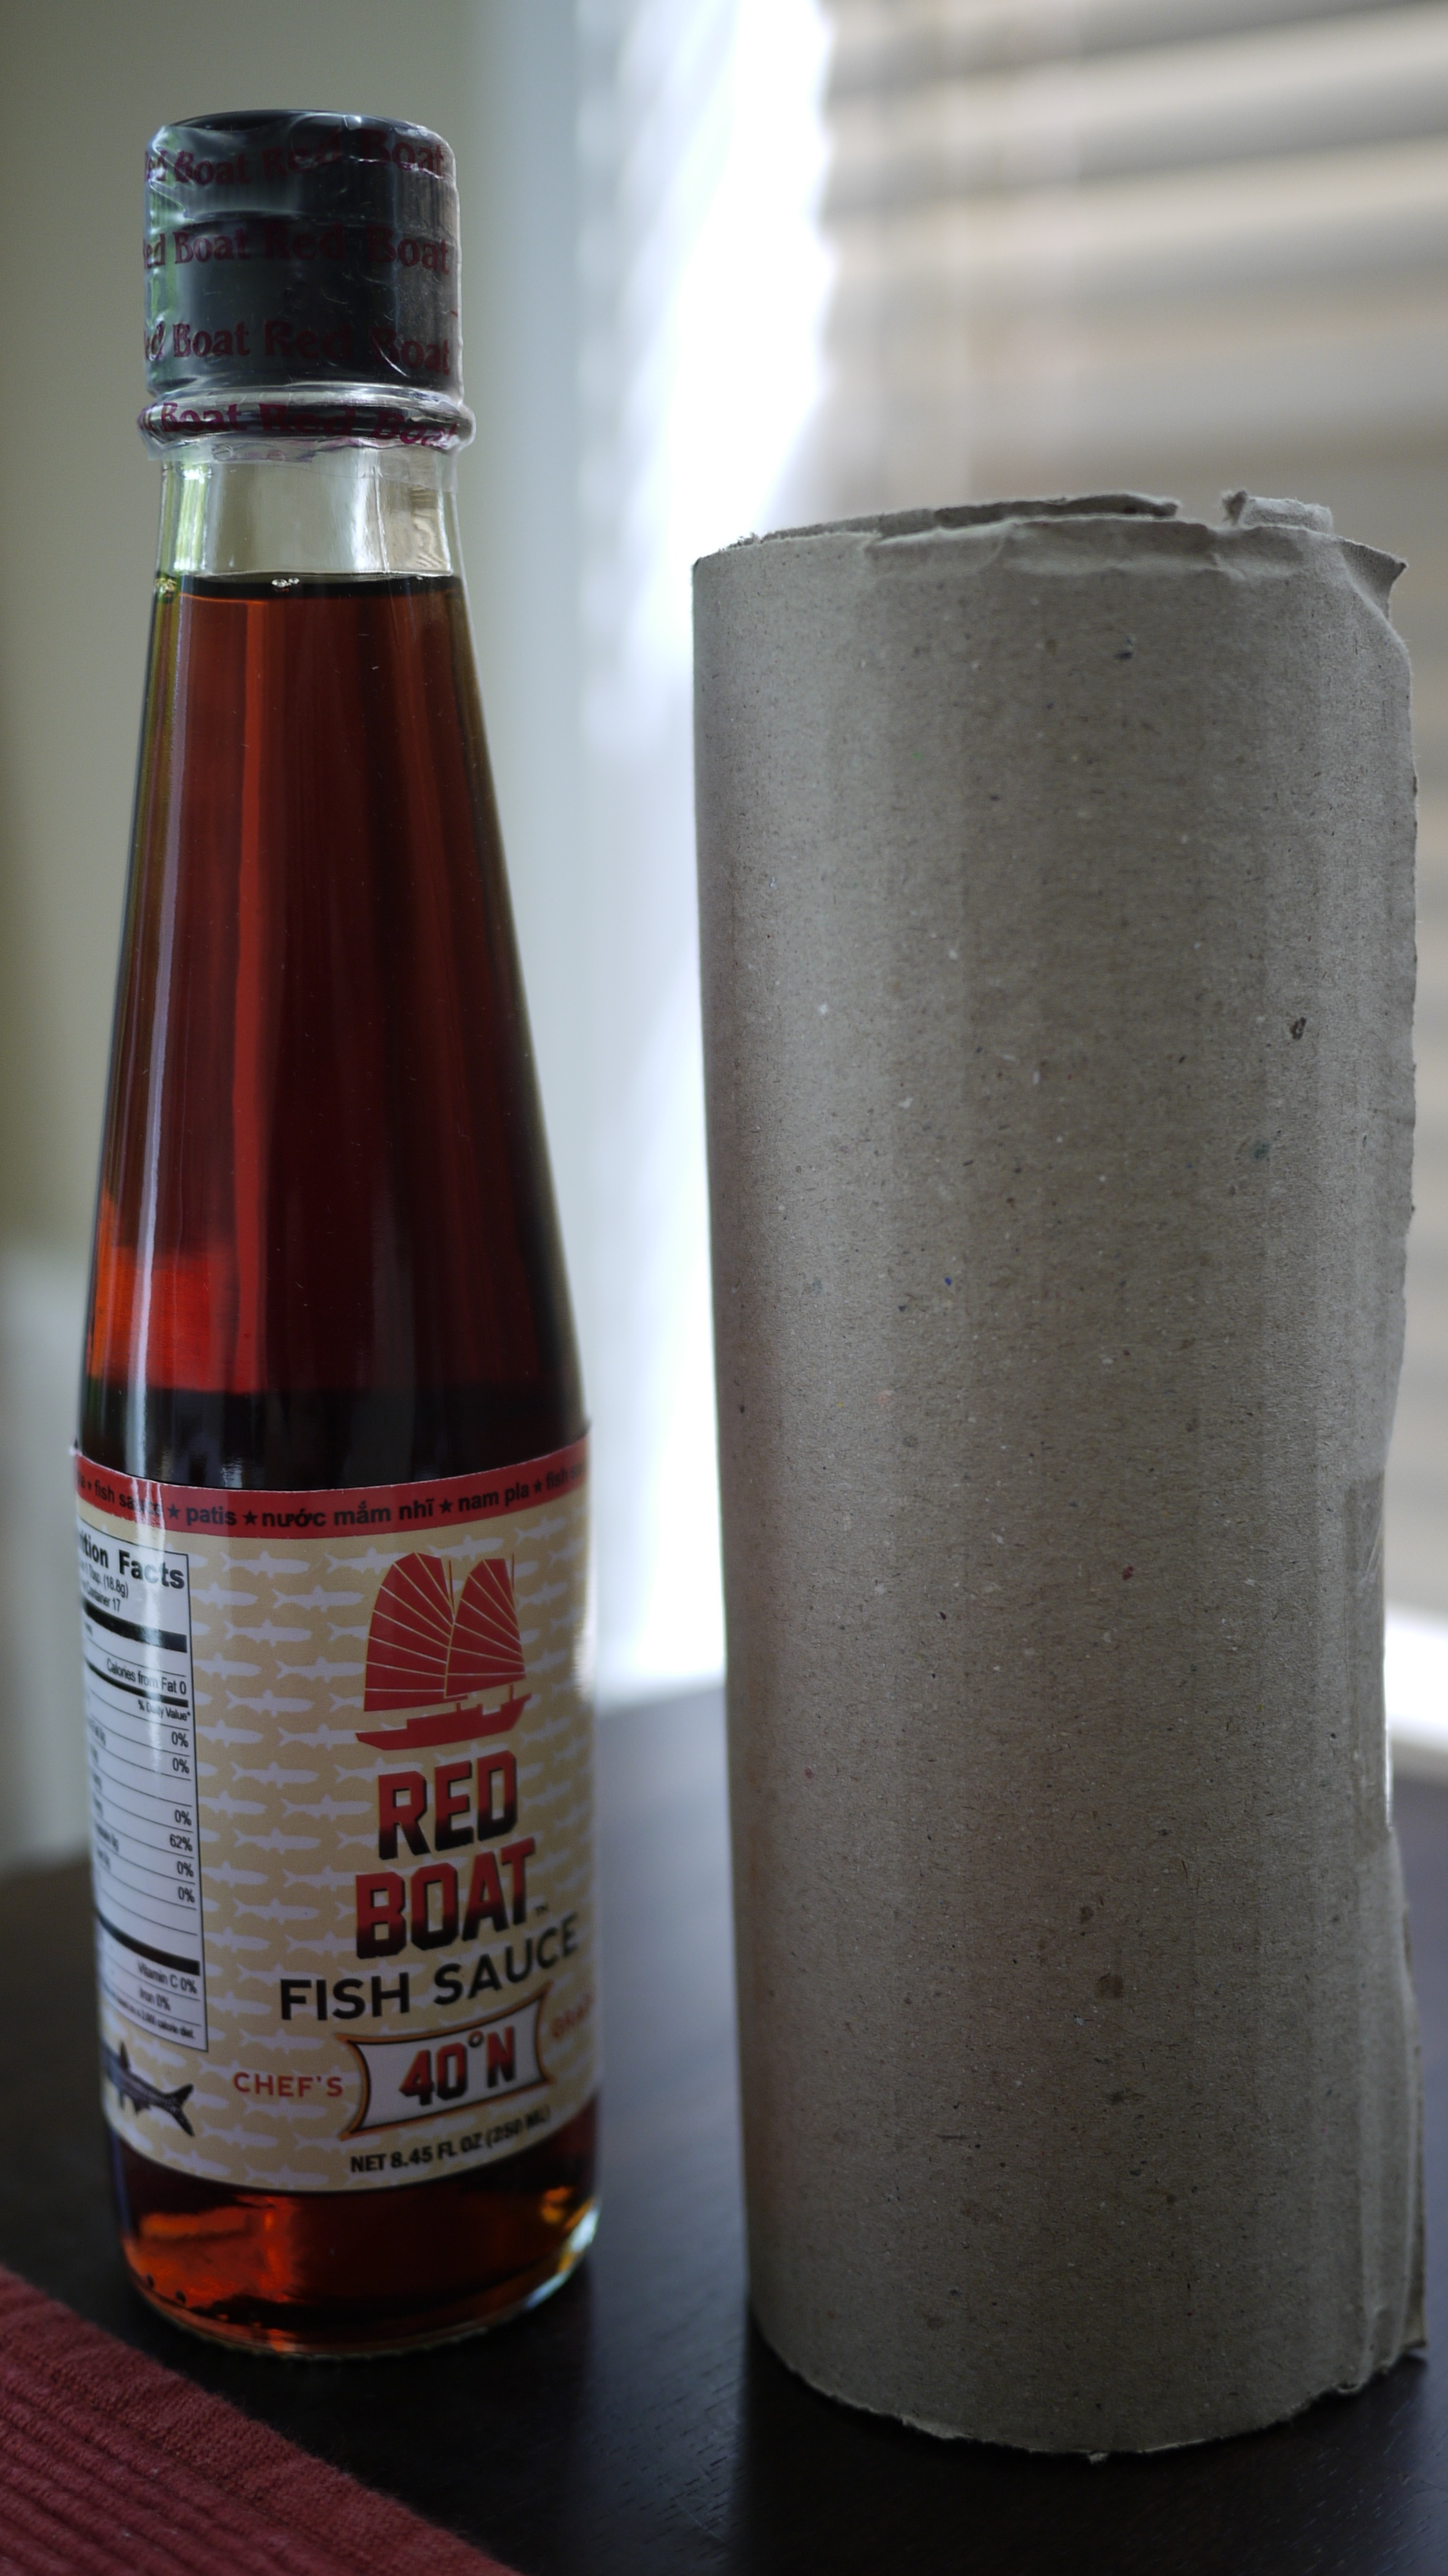 Red boat fish sauce duc n ly for Red boat fish sauce ingredients